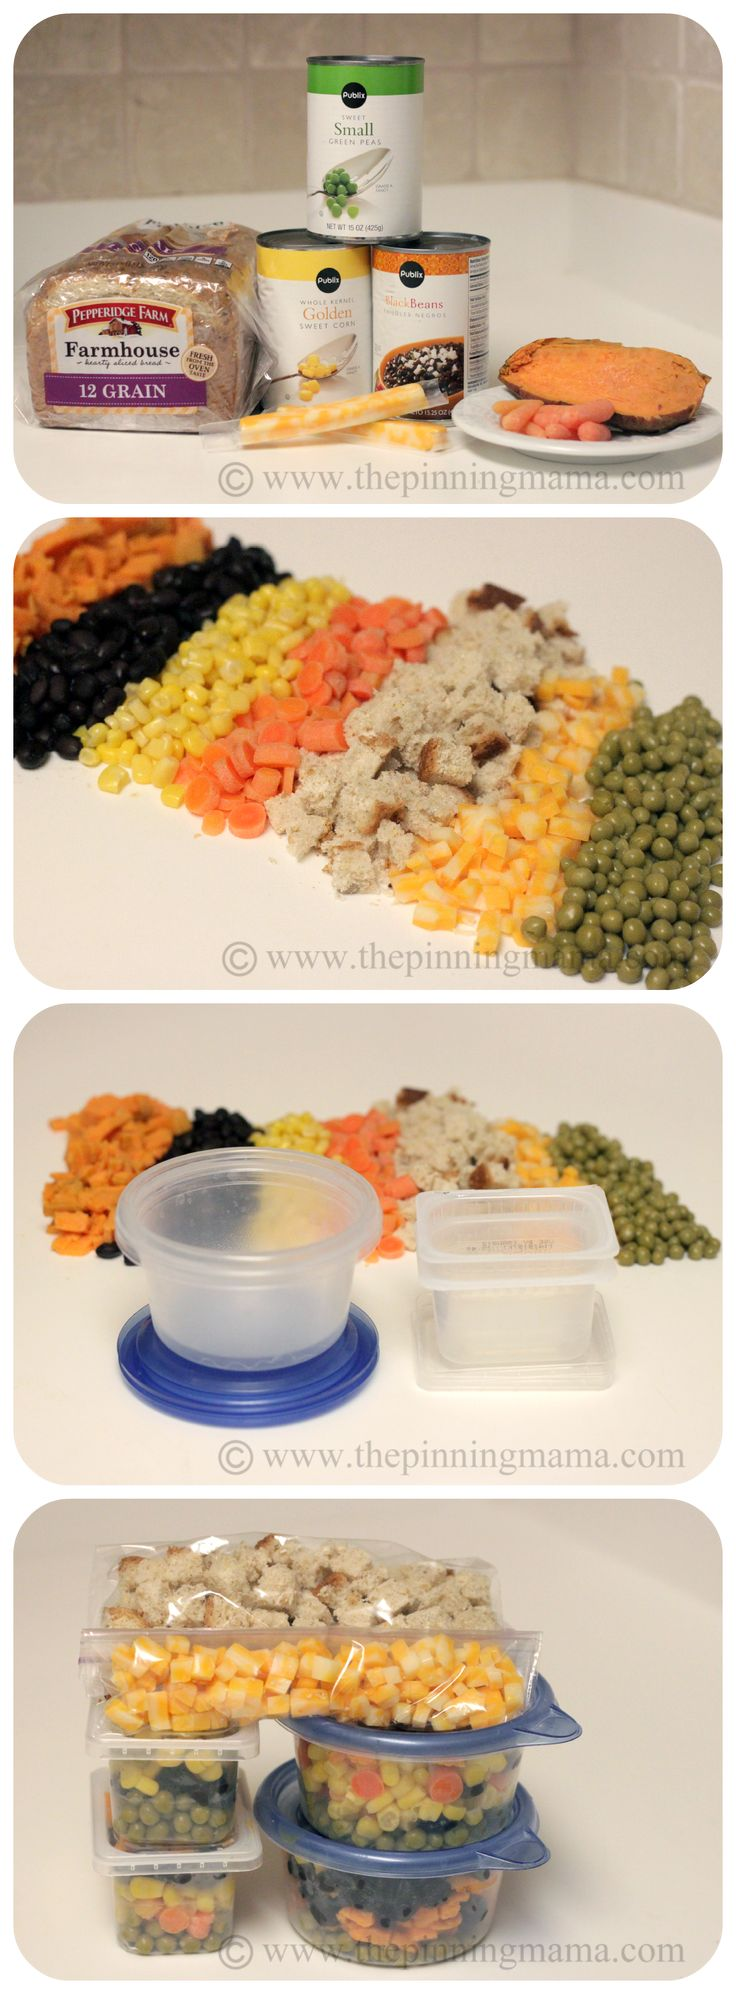 Healthy And Easy Baby Finger Foods For A Led Weaning Method